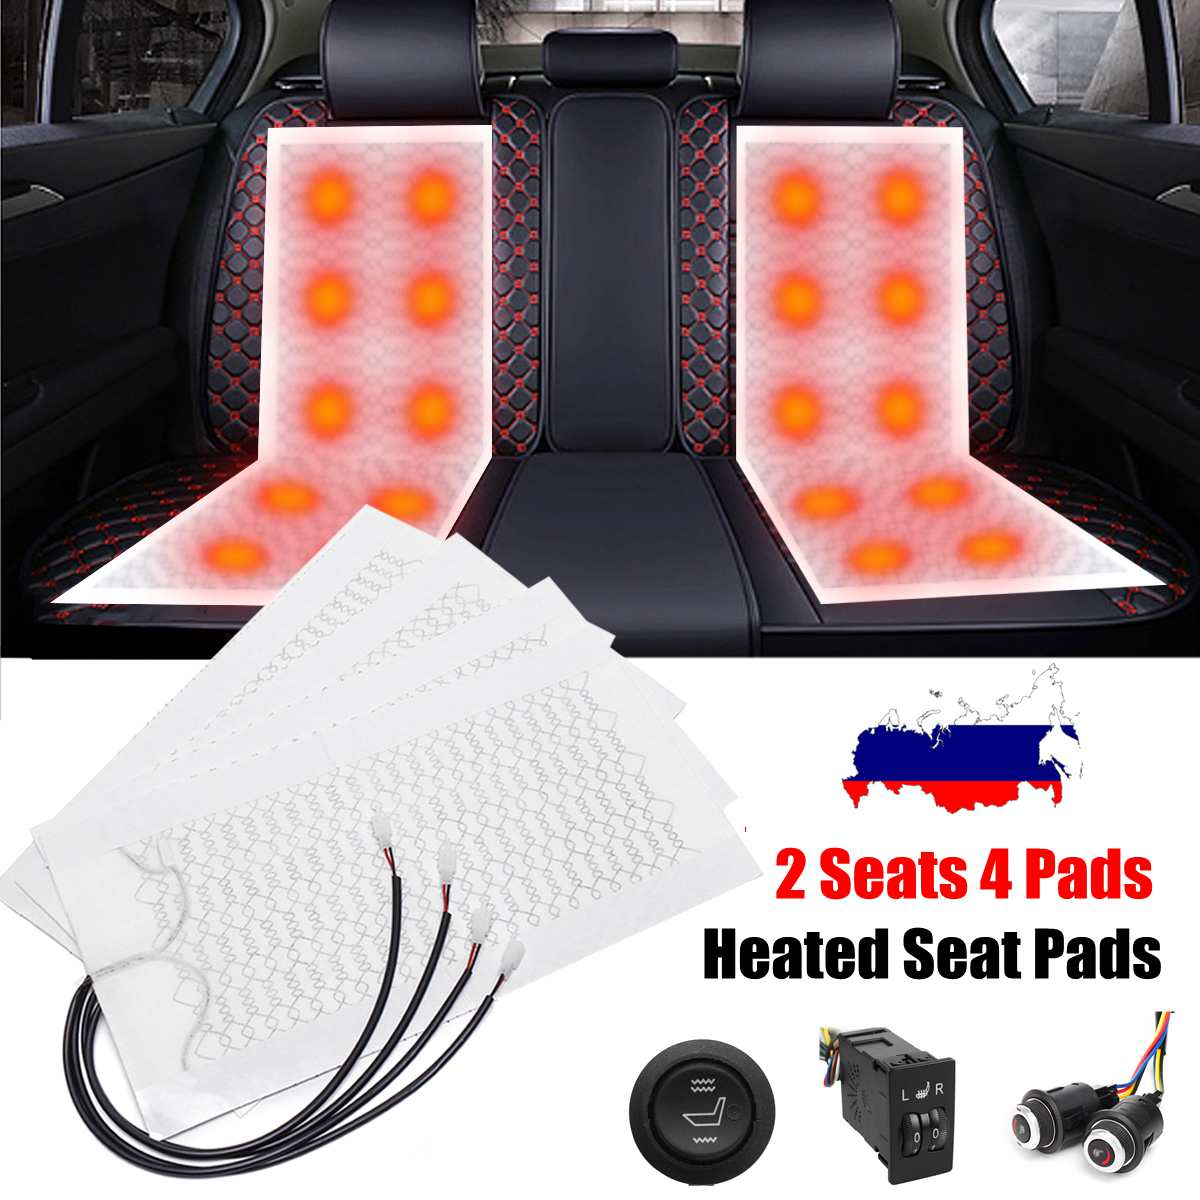 Universal 12V 2 Seats 4 Pads Carbon Fiber Heated Seat Heater Heating 12 V Pads 2 5 6 Level Switch Winter Warmer Seat Covers